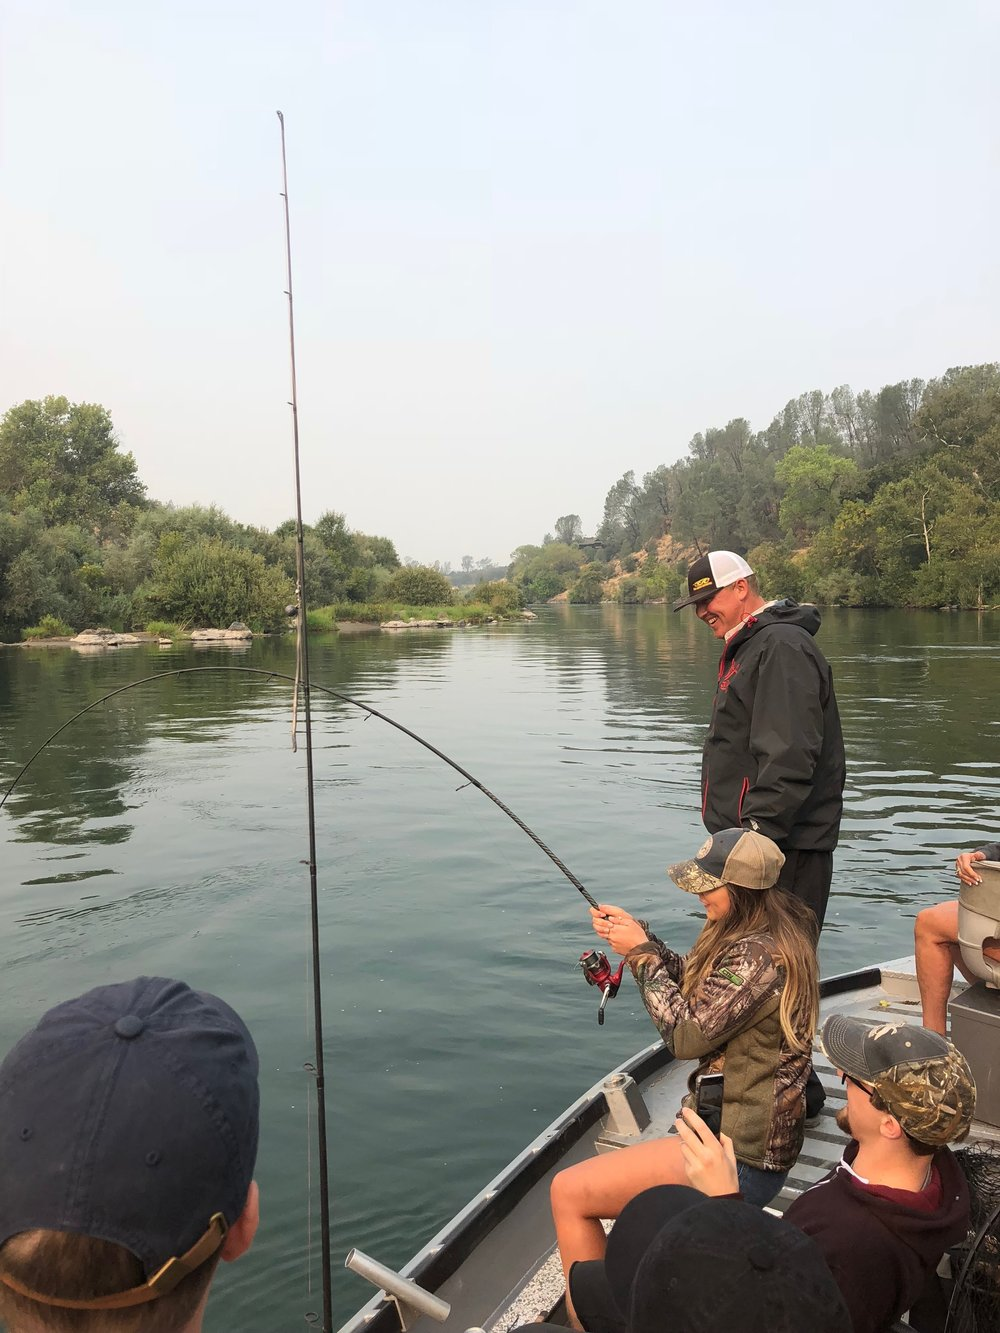 Angler Kyle keeps a tight grip on her Phenix Trifecta as she does battle on the Sacramento River in the canyon region near Red Bluff, Ca on August 25, 2018. Johny Eller stands by as Kyle's group takes pictures and cheers her on during her battle!